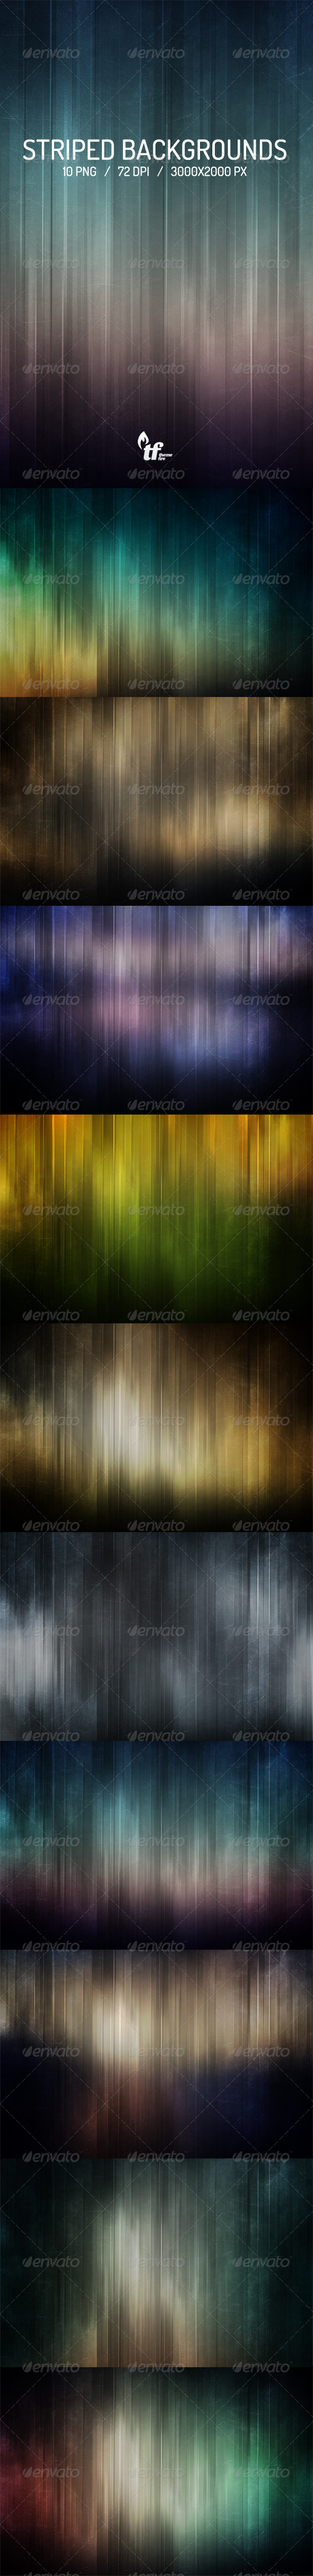 GraphicRiver 10 Striped Backgrounds 7296277